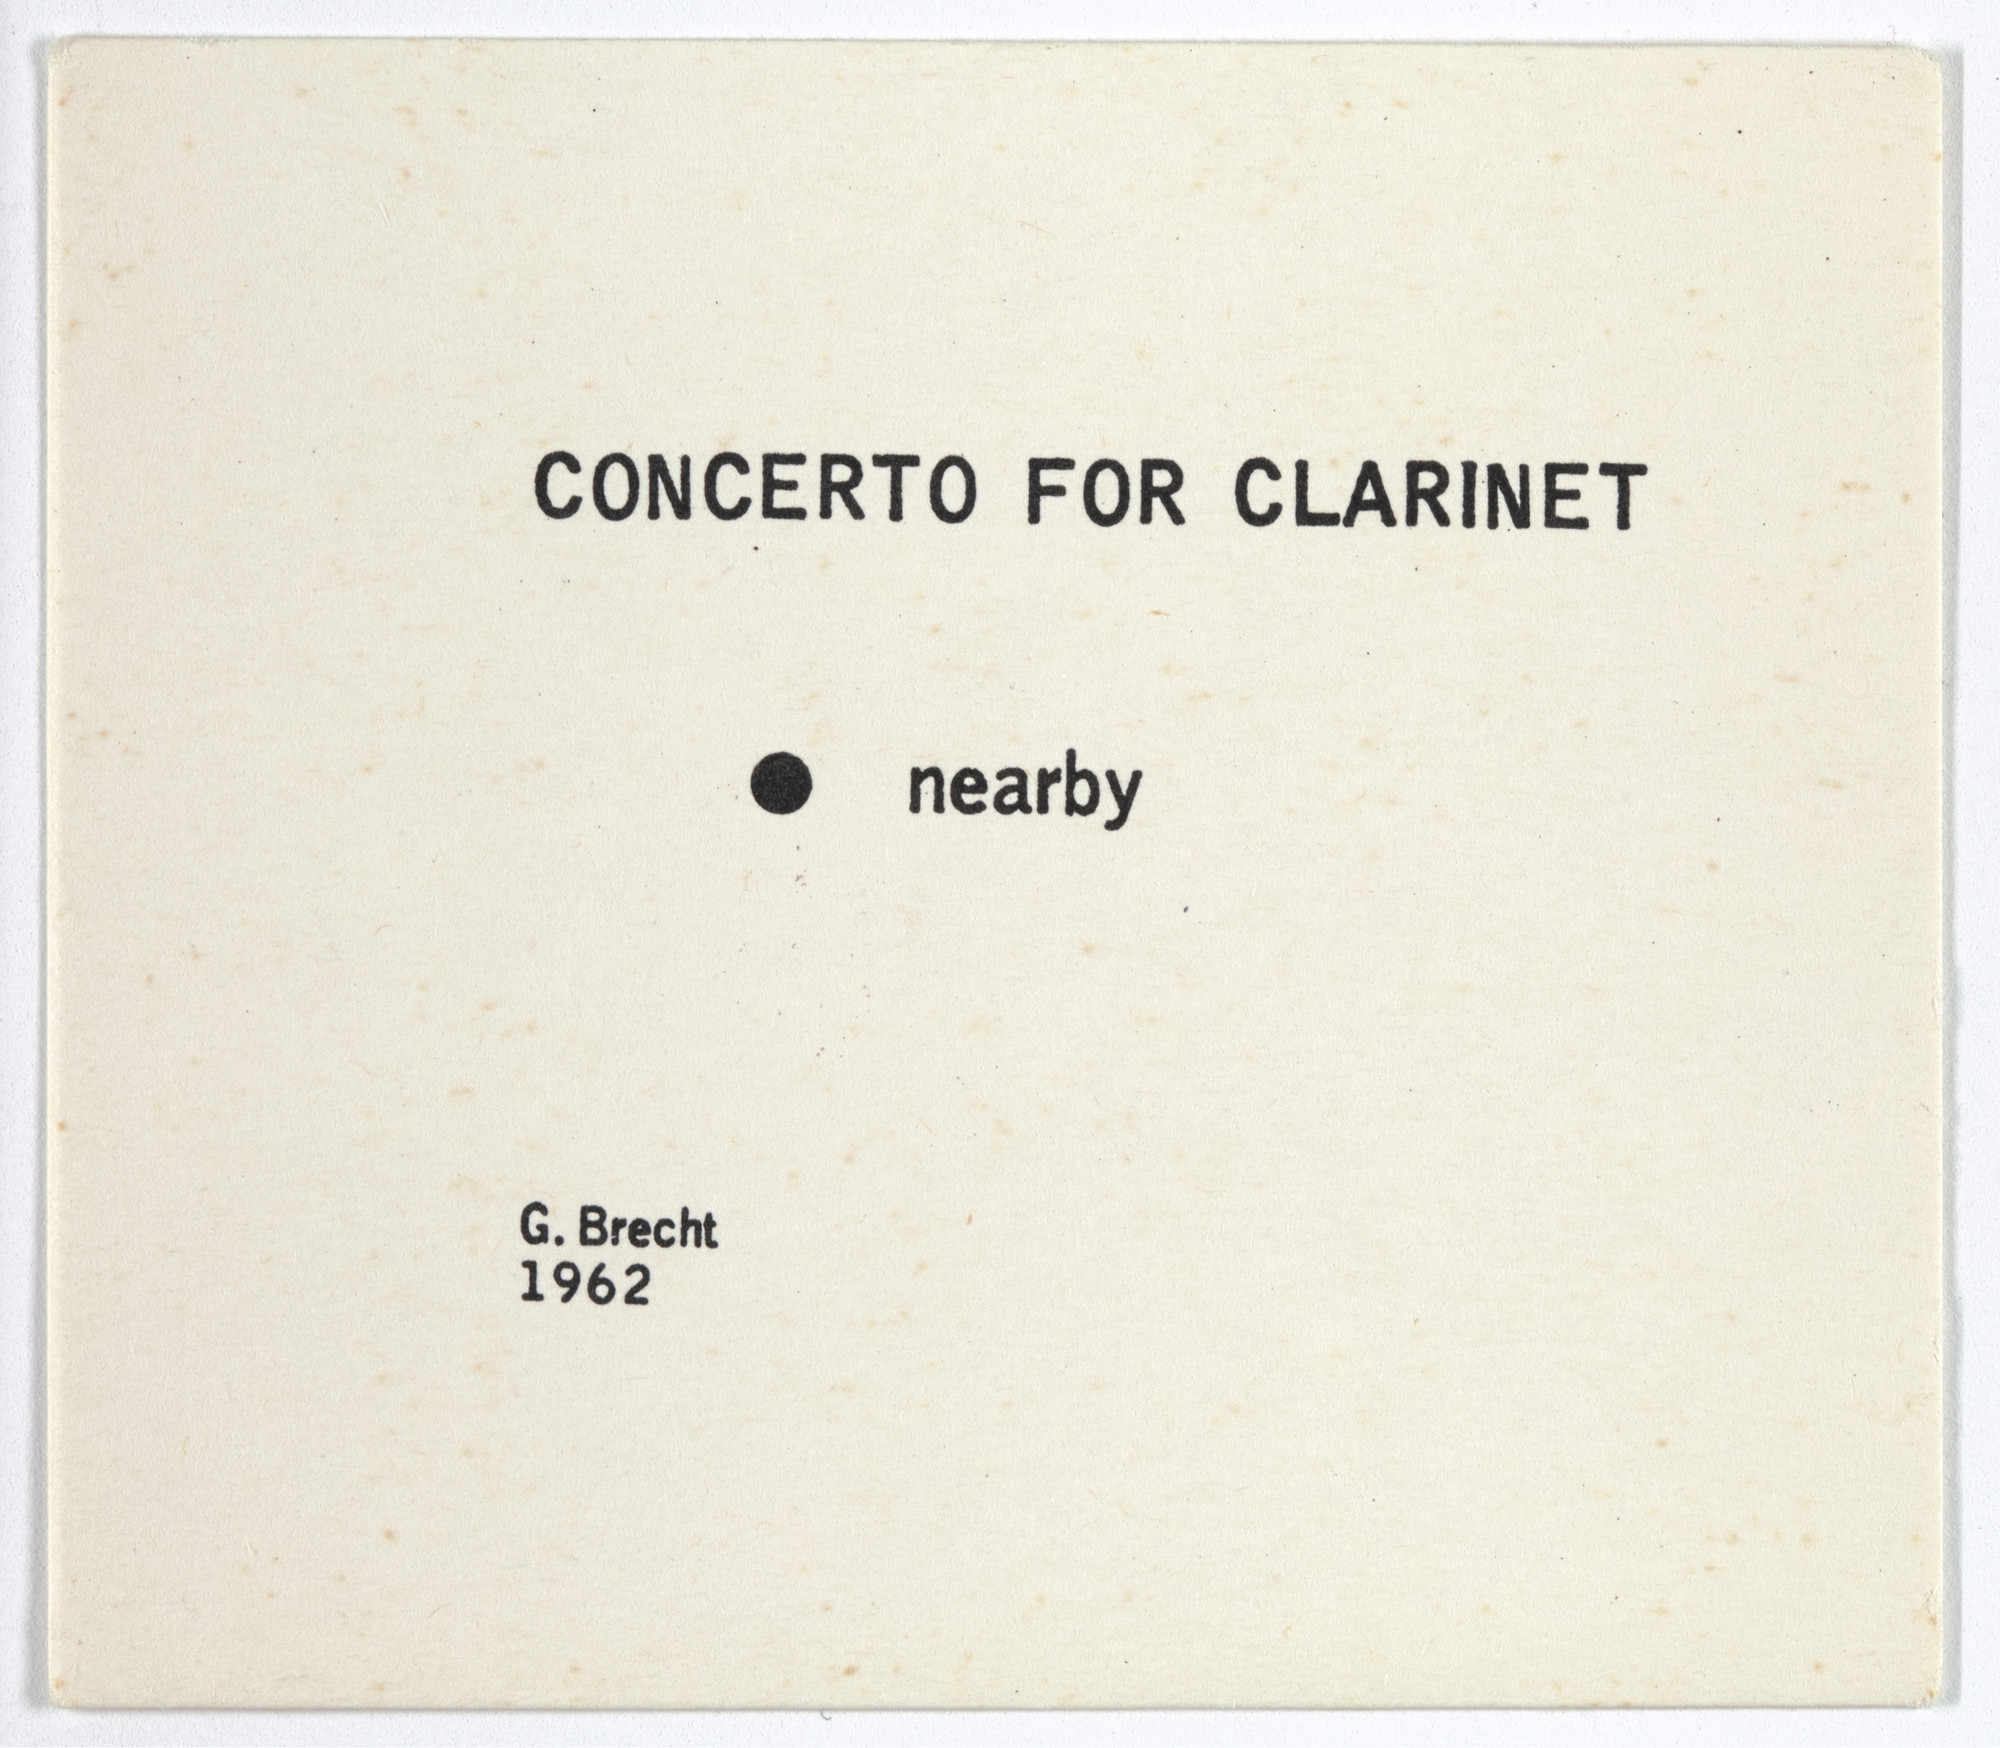 George Brecht. Concerto for Clarinet from Water Yam. 1962